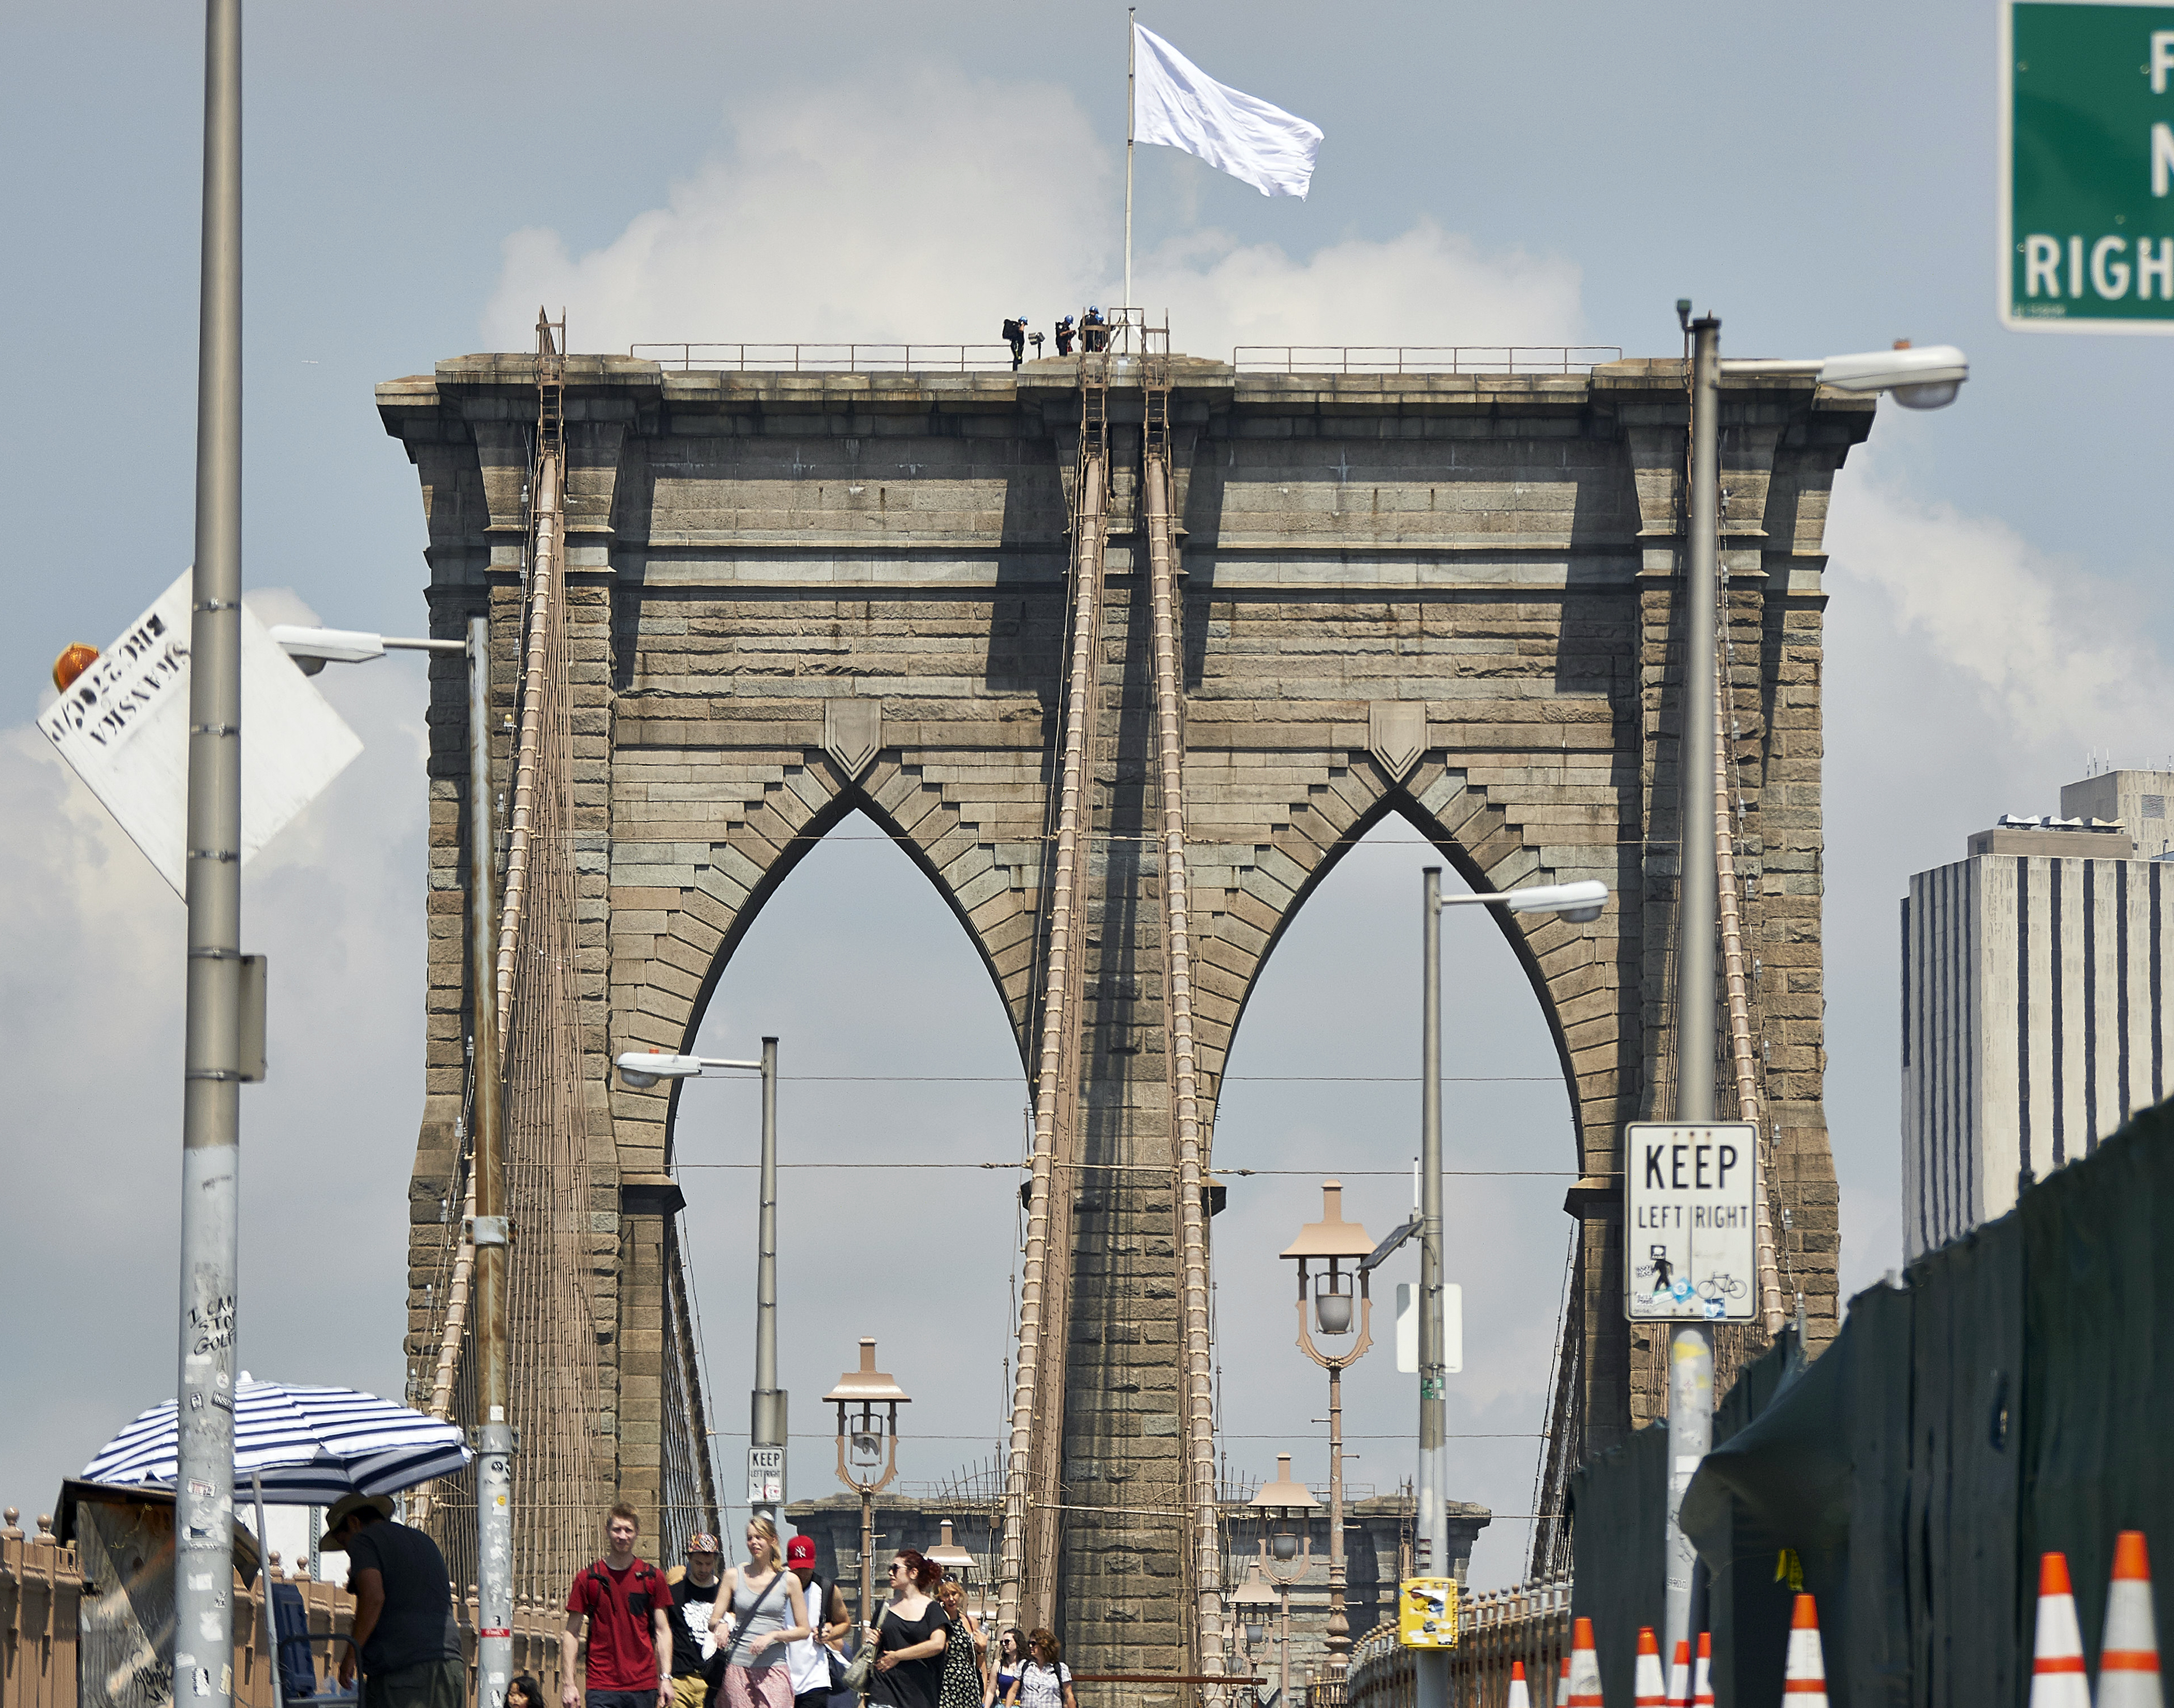 Members of the New York Police Department scale the Brooklyn Bridge after two high-flying American flags were swiped from atop the Brooklyn Bridge overnight and replaced with two white flags